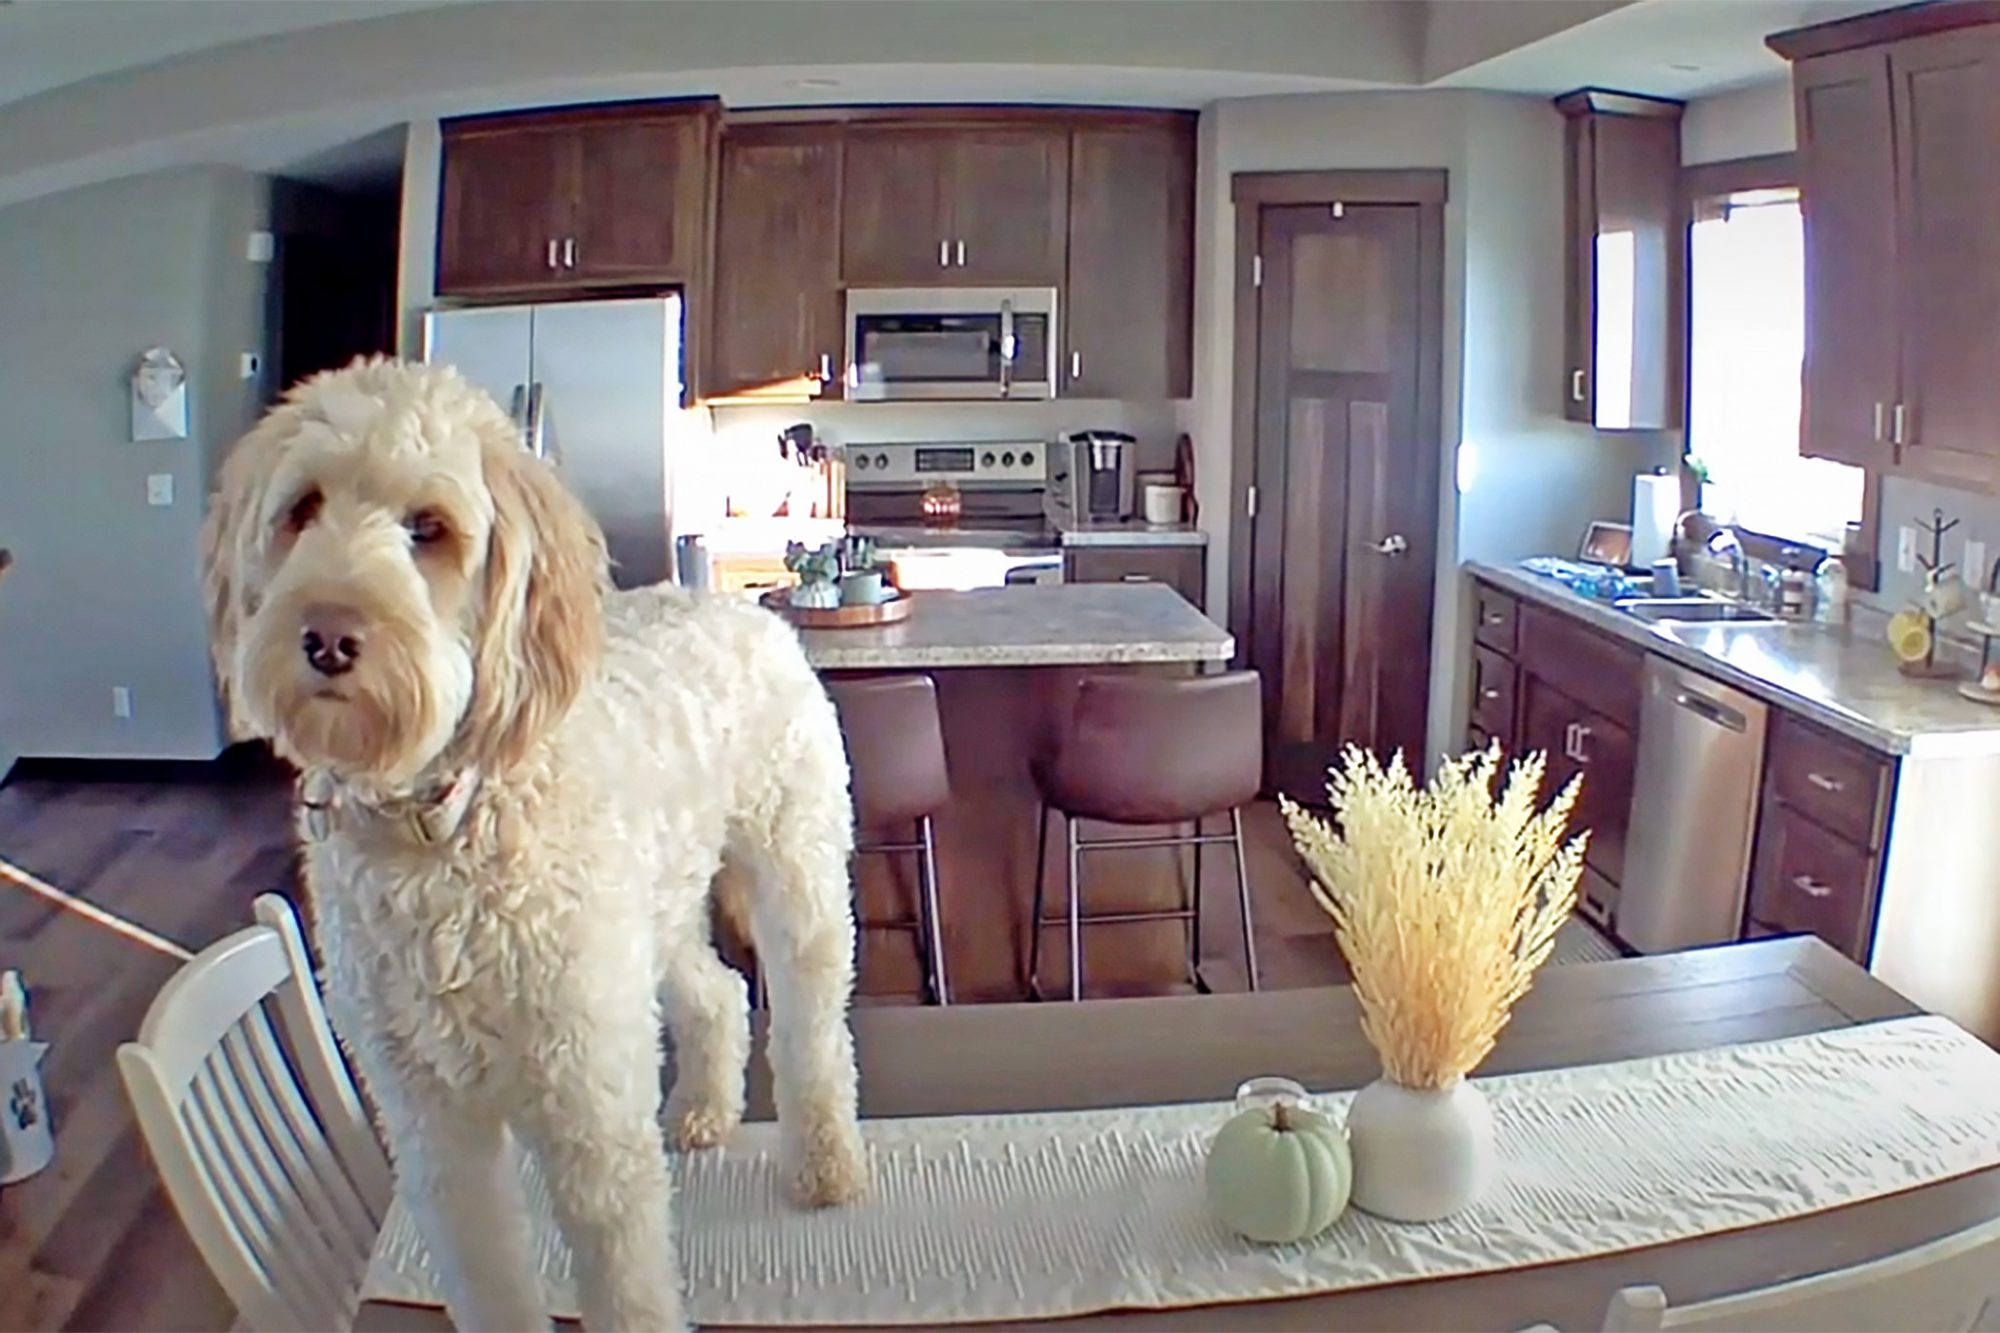 Millie stands on kitchen table and ignores pleas to get down